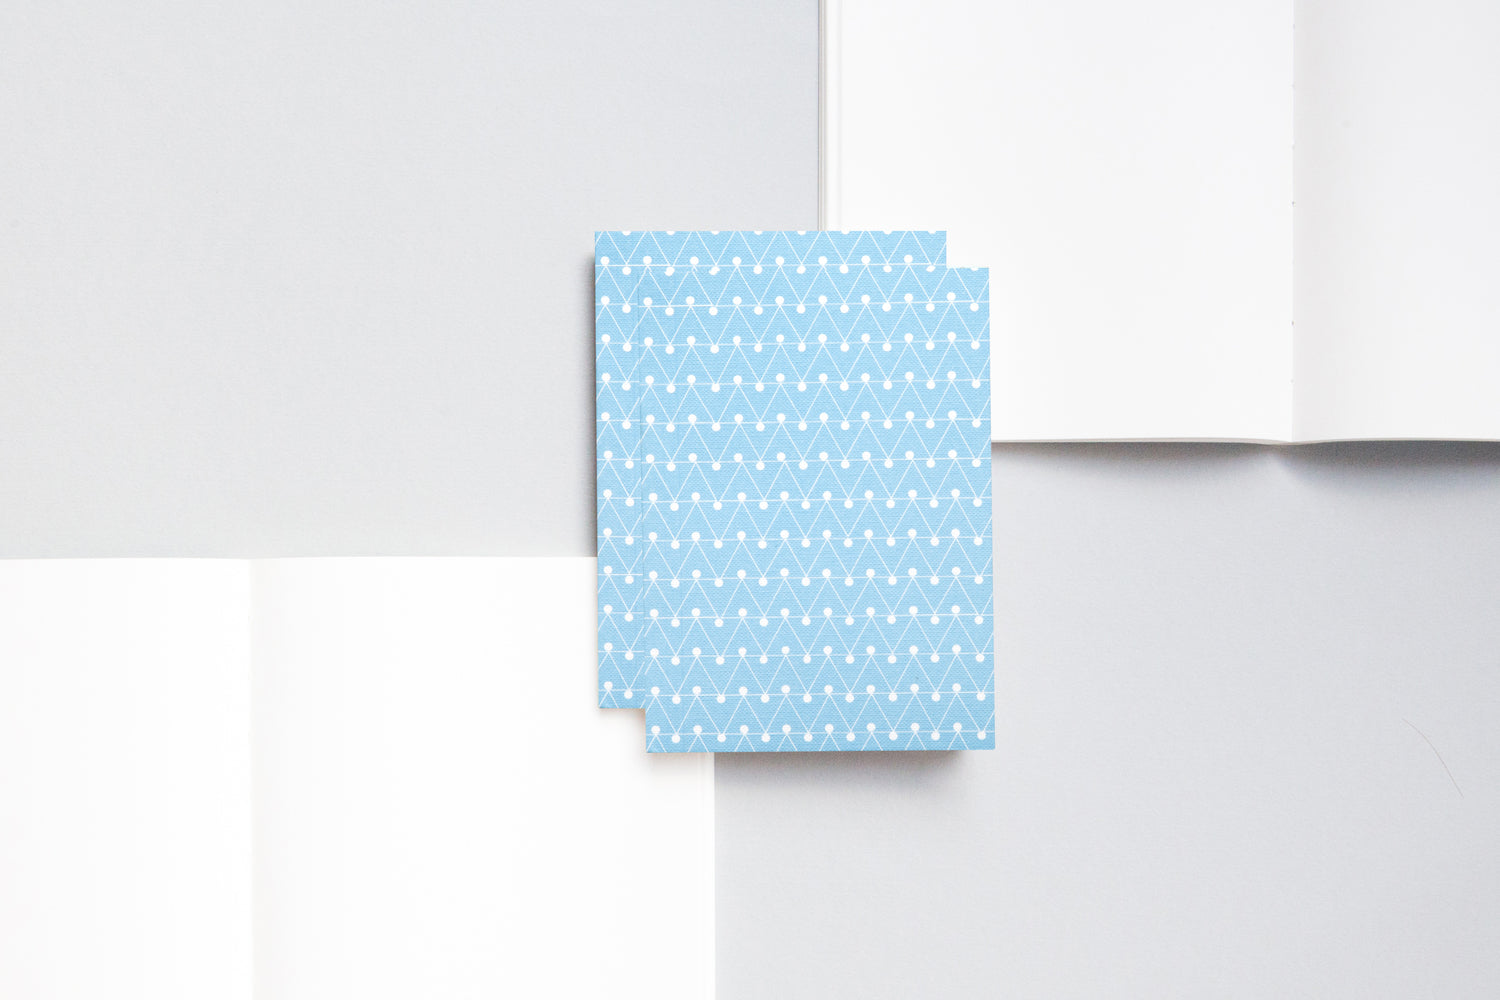 A6 notebook with plain pages and an embossed cover printed in blue